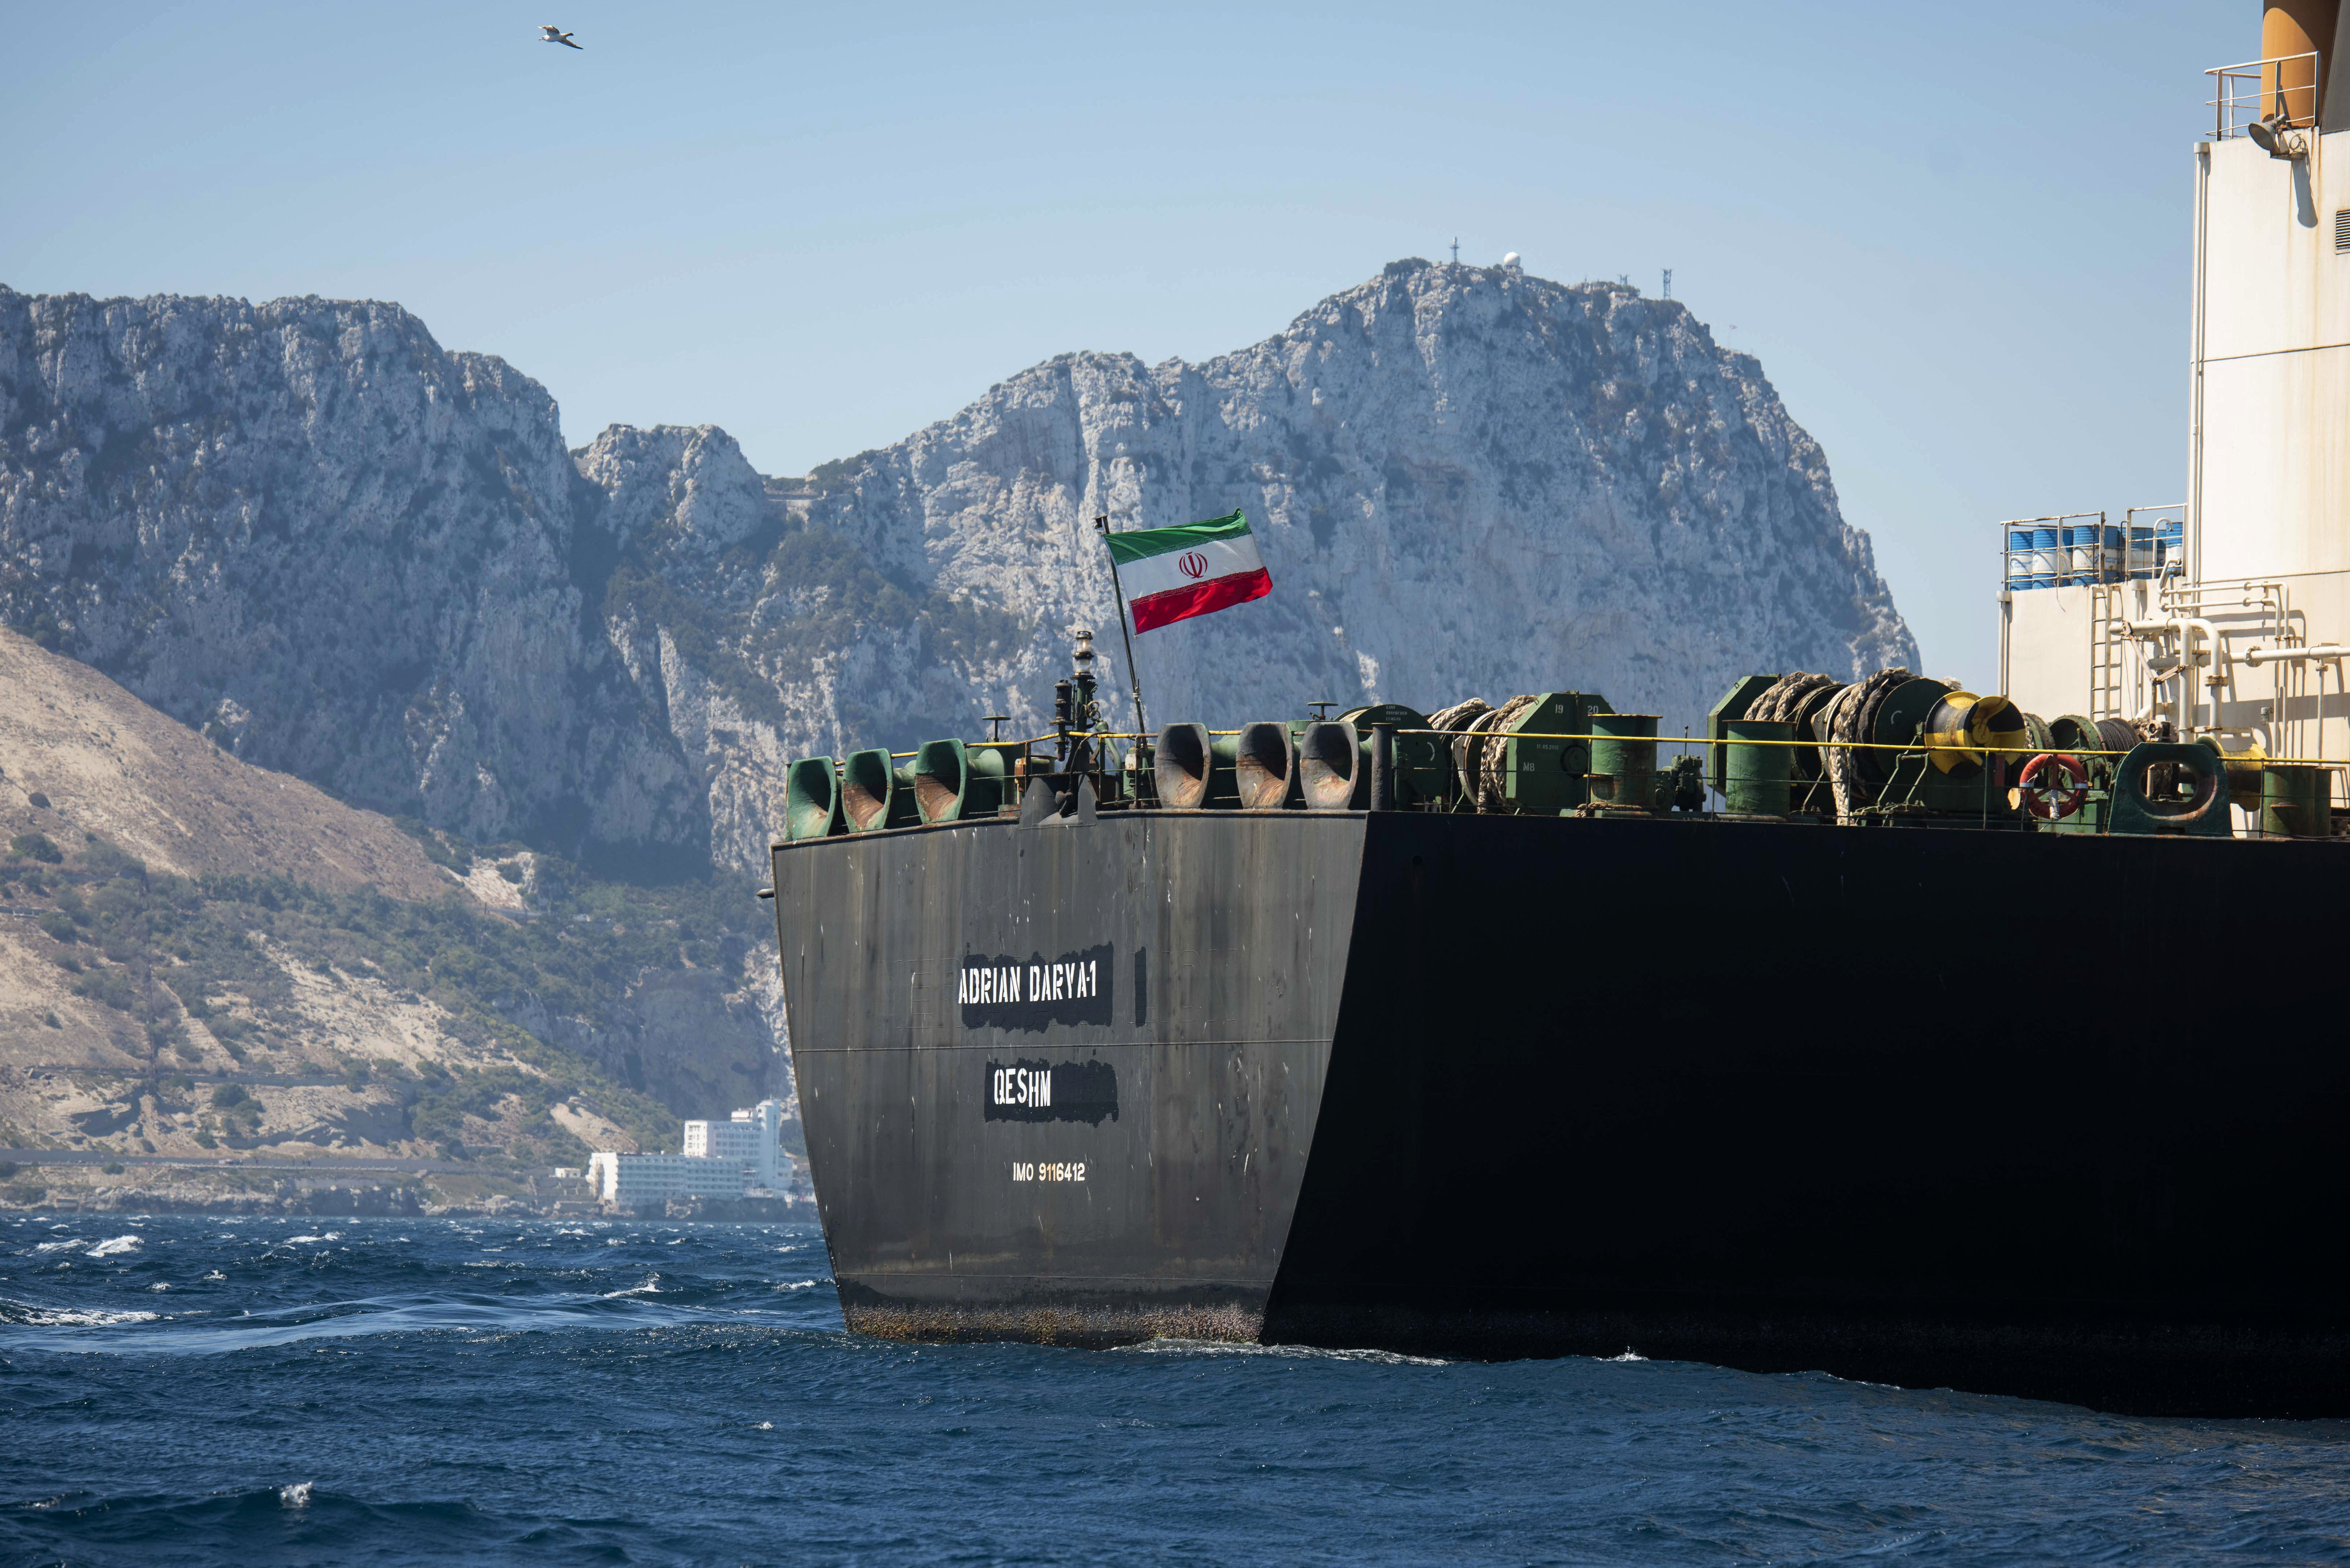 Renamed Adrian Aryra 1 super tanker hosting an Iranian flag sails in the waters in the British territory of Gibraltar, Sunday, Aug. 18, 2019. (Marcos Moreno/AP)